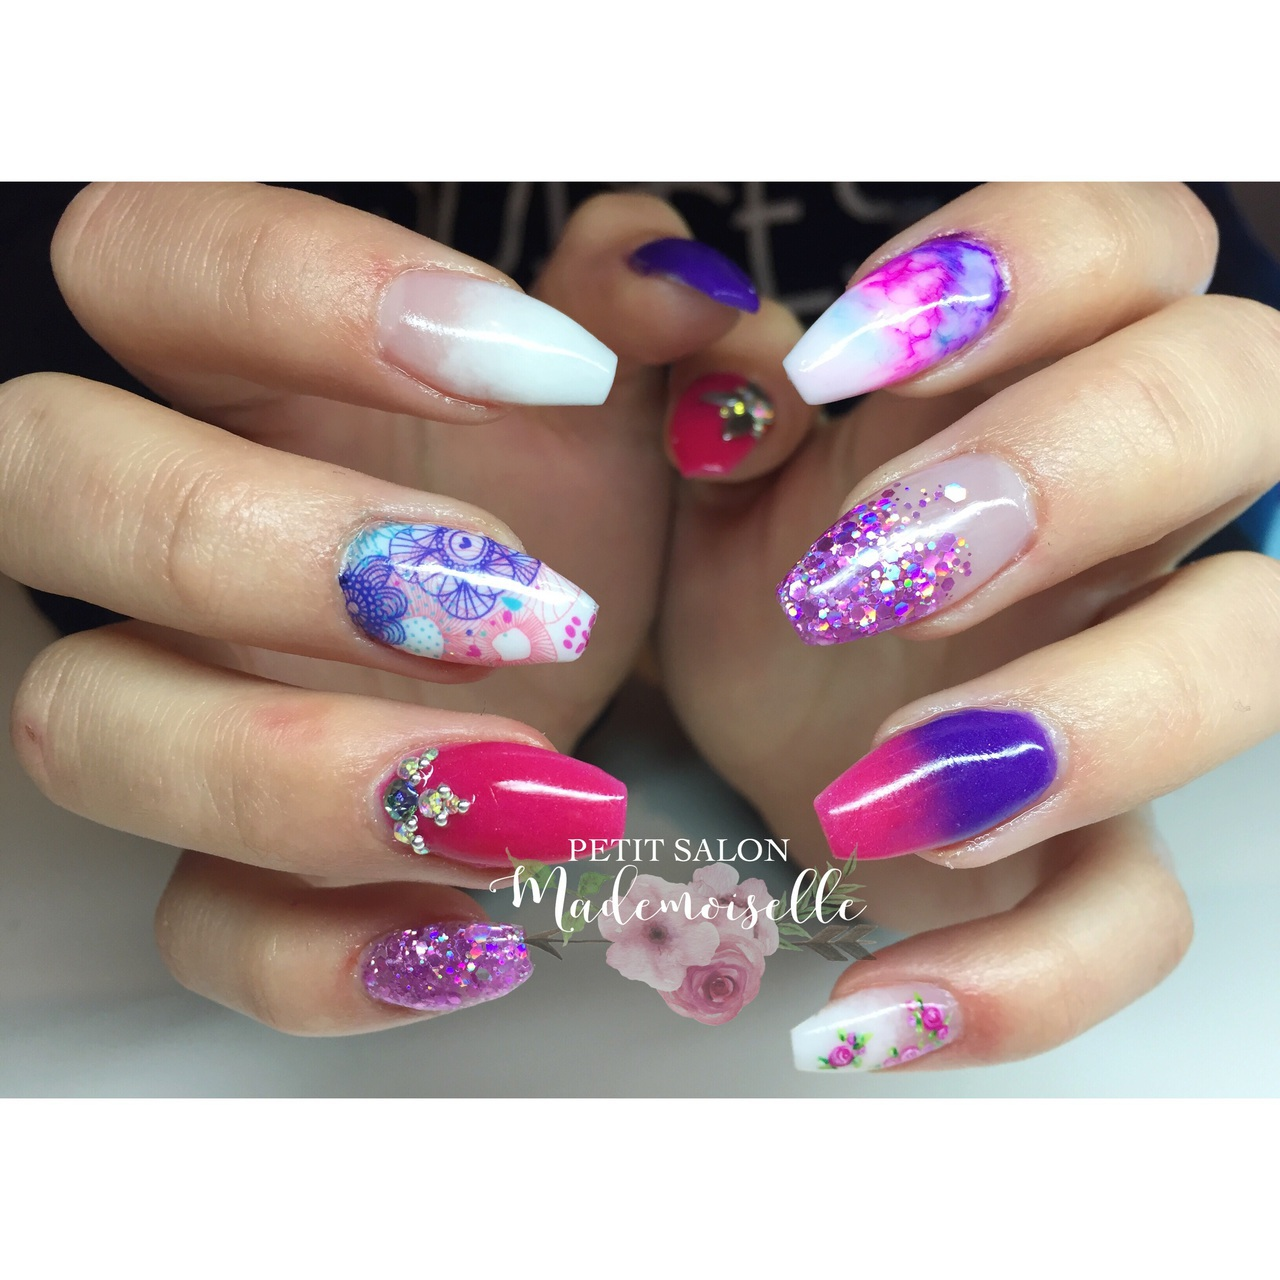 Andreea Reyes 253 images about nails�� on we heart it | see more about